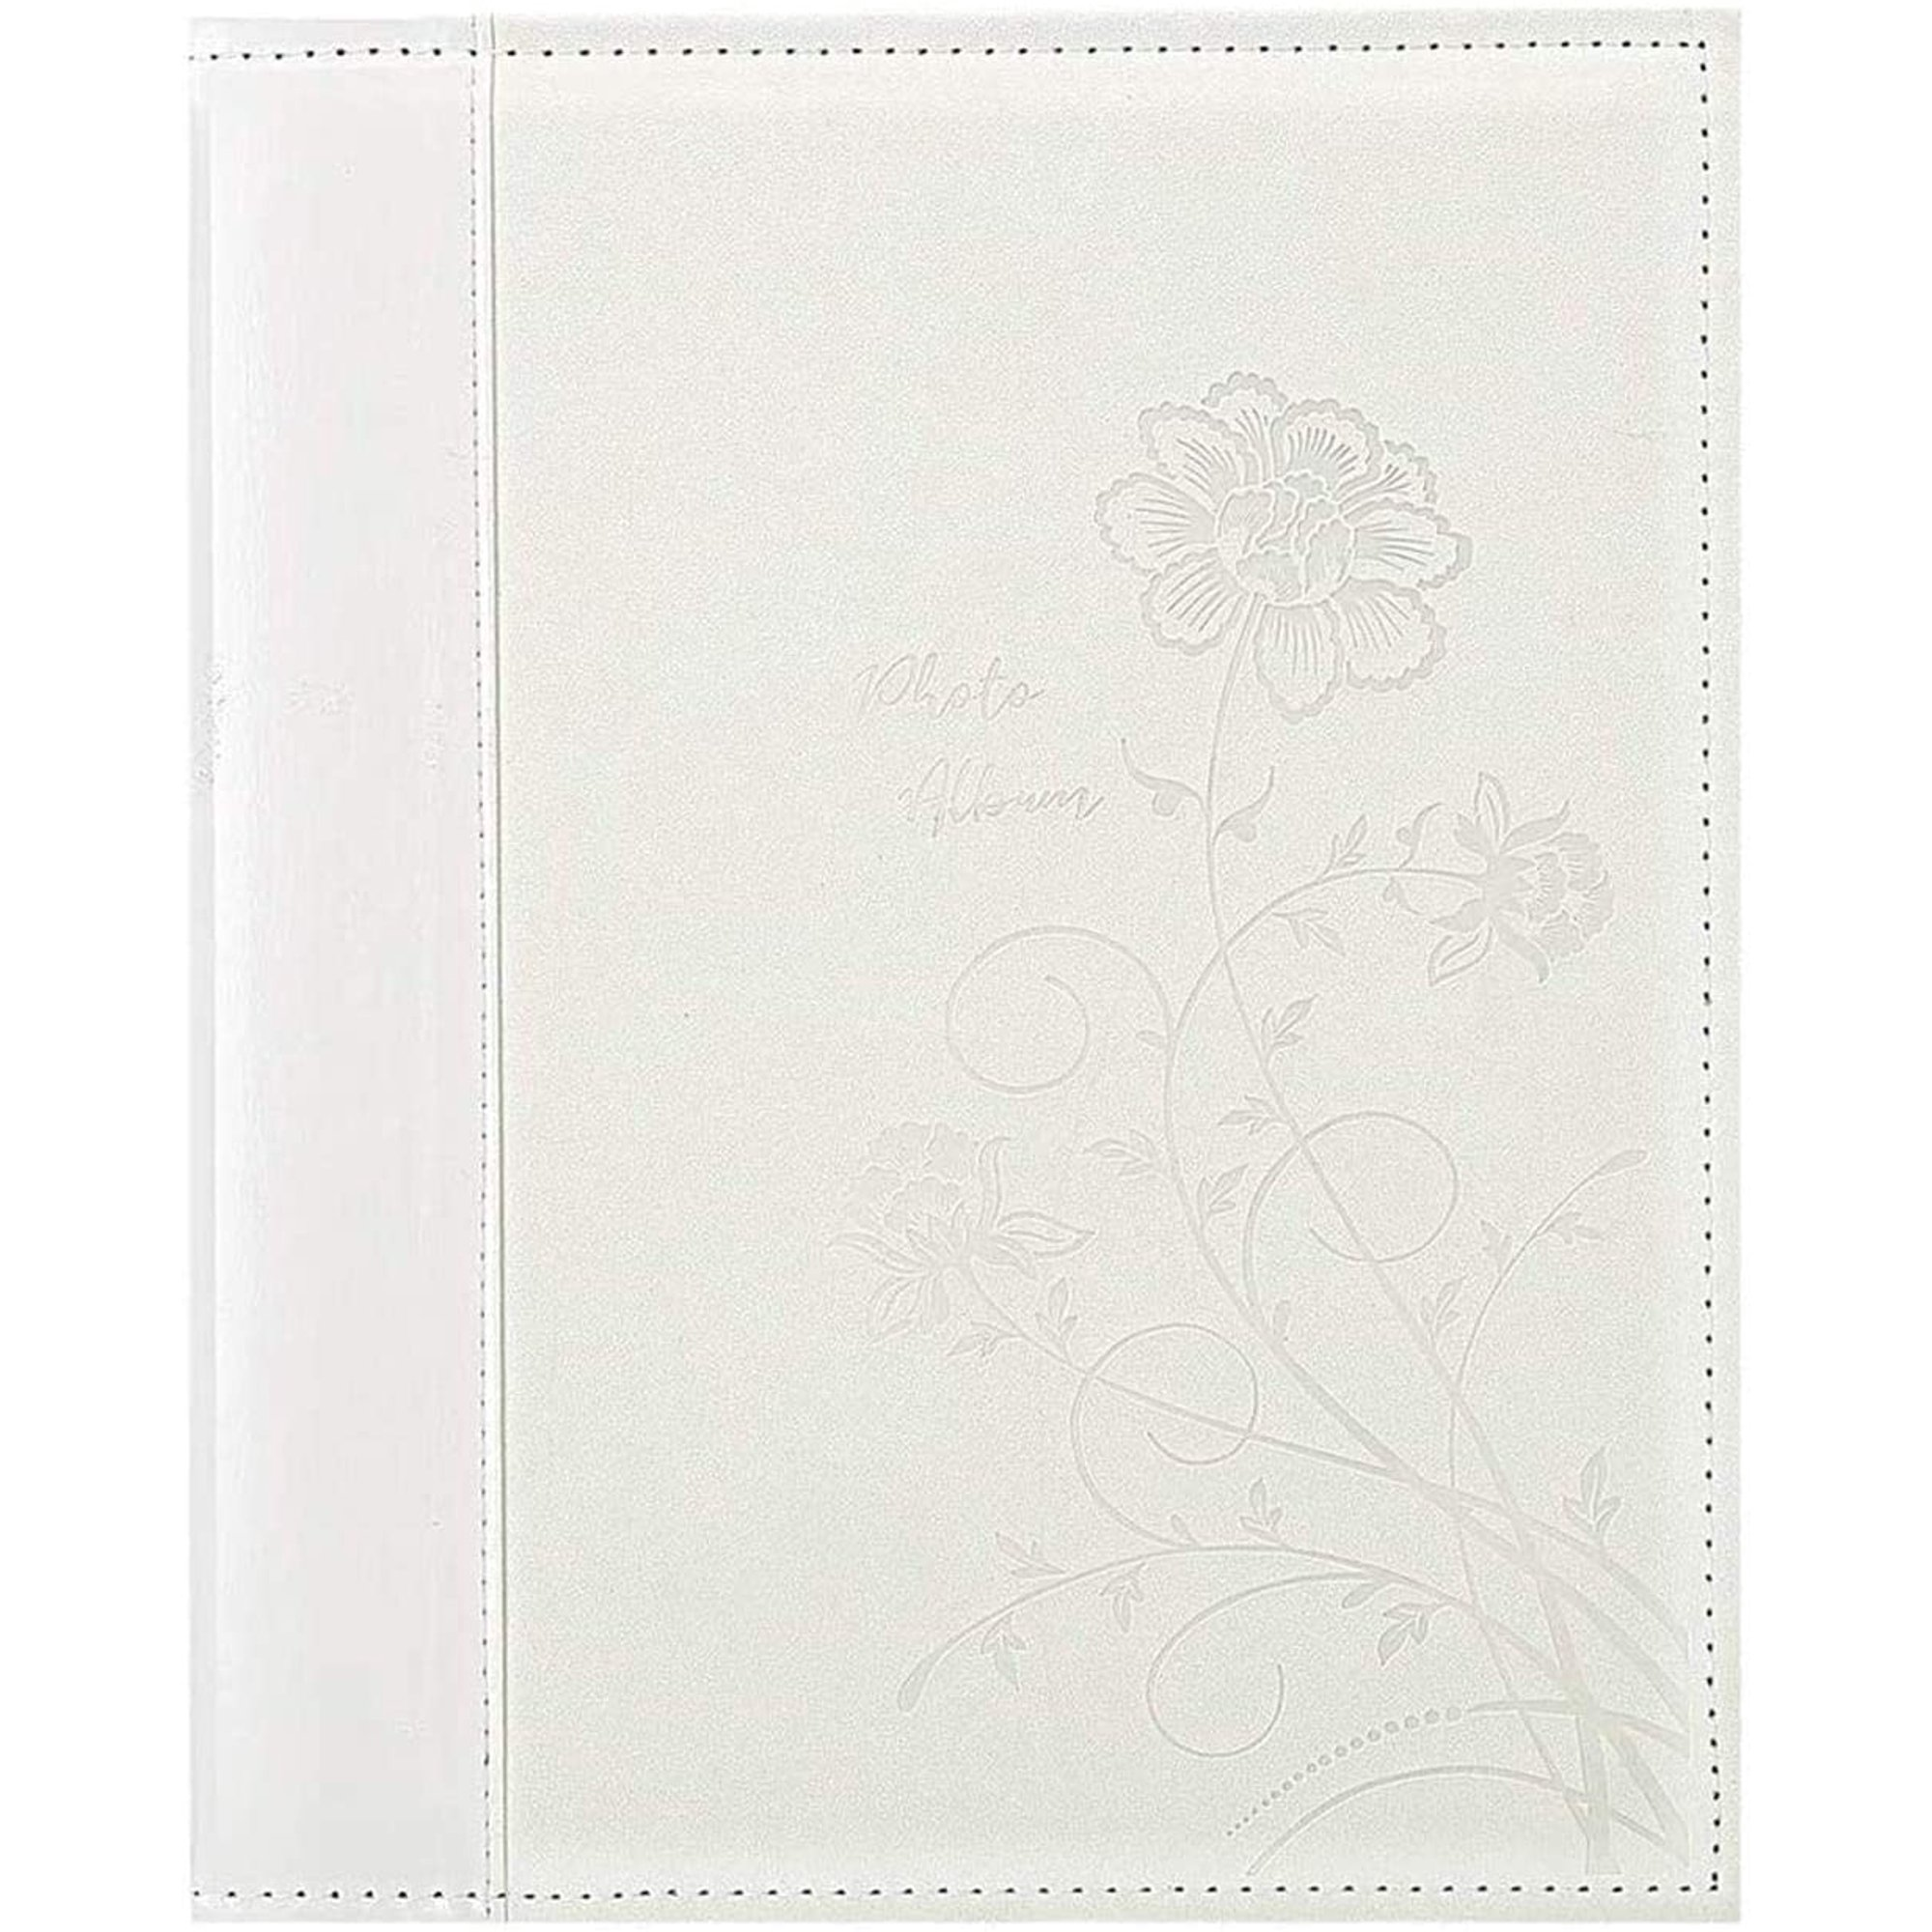 Photo Album 4x6 600 Photos Large Capacity Wedding Family Leather Cover Picture Albums Holds 600 Horizontal And Vertical 4x6 Photos White Walmart Canada